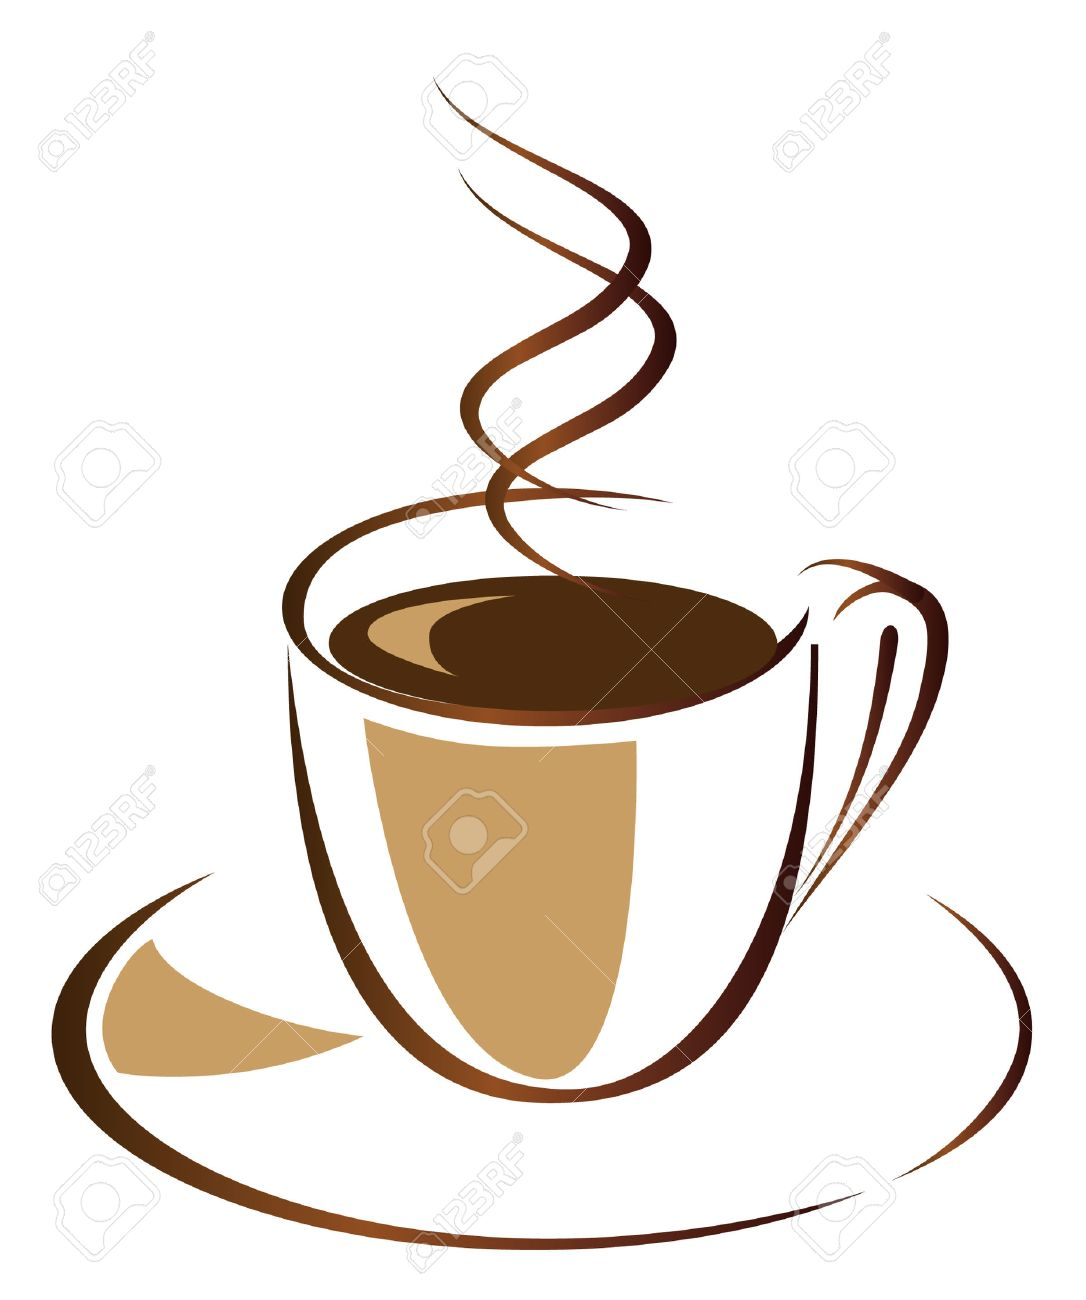 Coffee cup vector free - Black Coffee In White Cup Vector Illustration Stock Vector 8072235